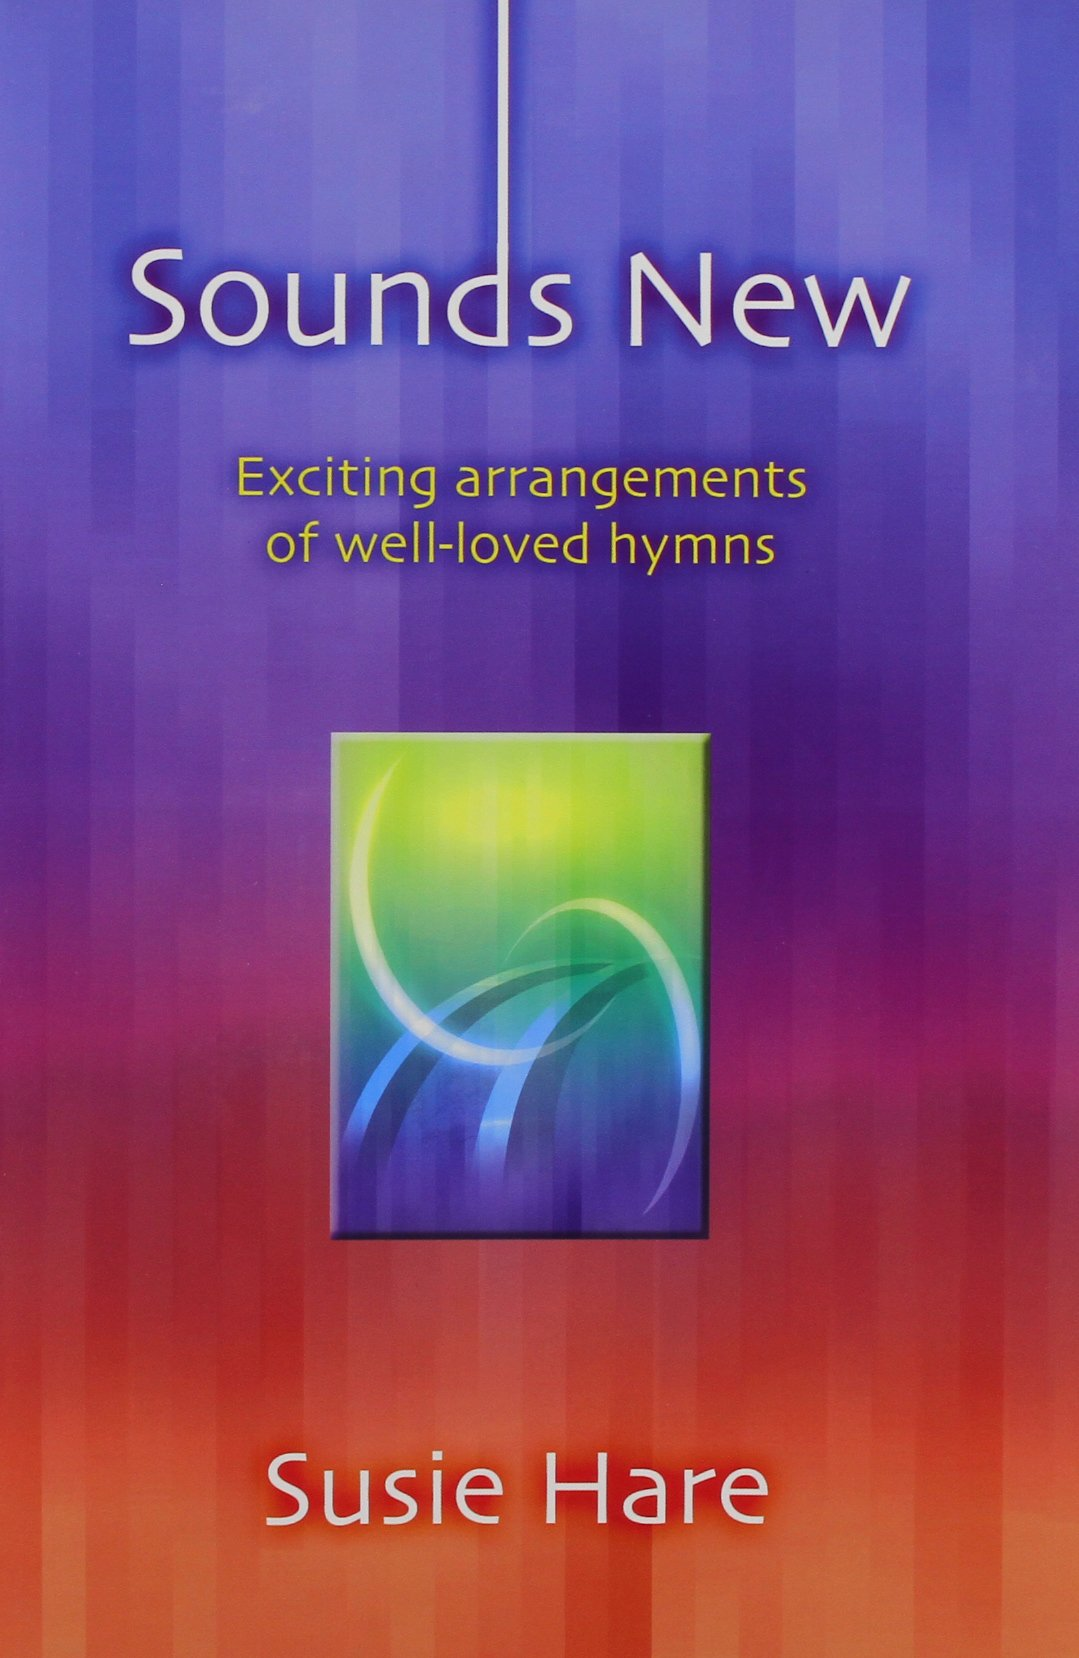 Sounds New: Exciting Arrangements of Well-loved Hymns by Kevin Mayhew